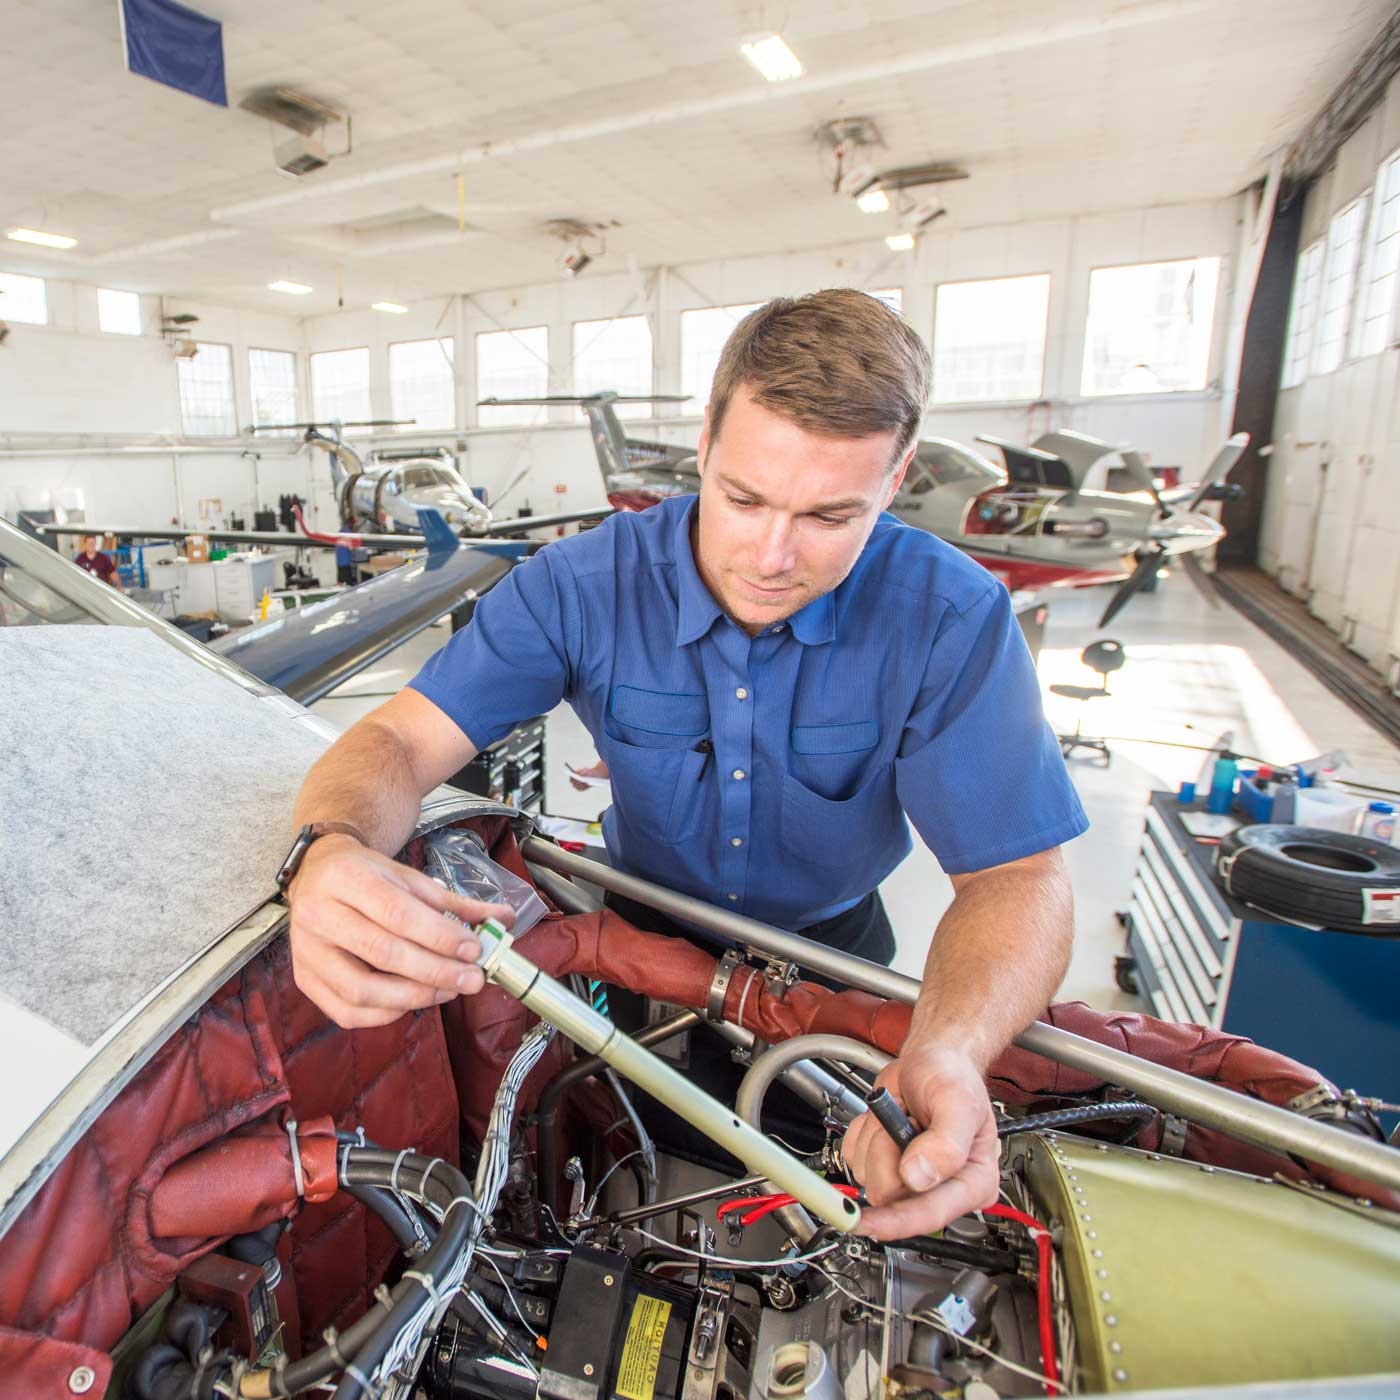 A man working on the engine of an airplane.